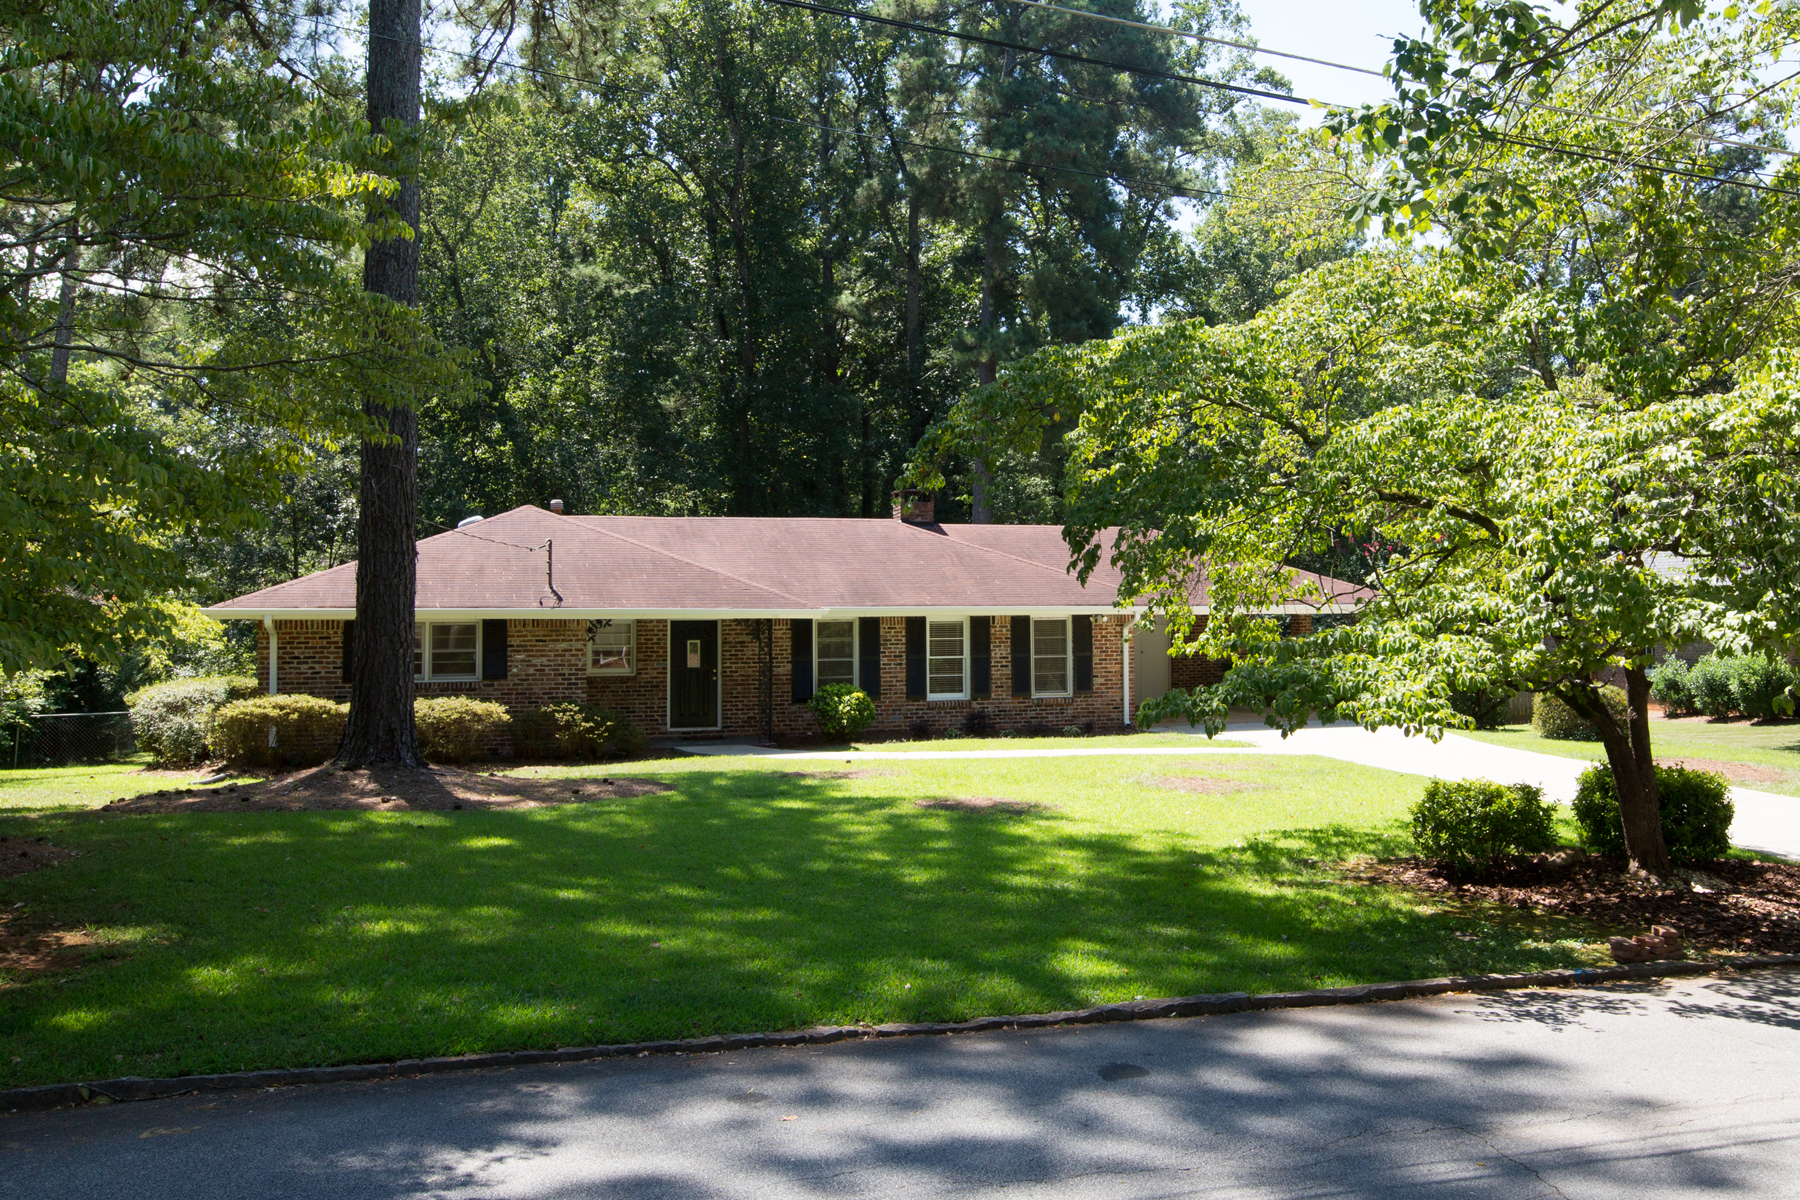 Maison unifamiliale pour l Vente à Beautiful Ranch In Wonderful School District 3855 Gladney Drive Atlanta, Georgia, 30340 États-Unis